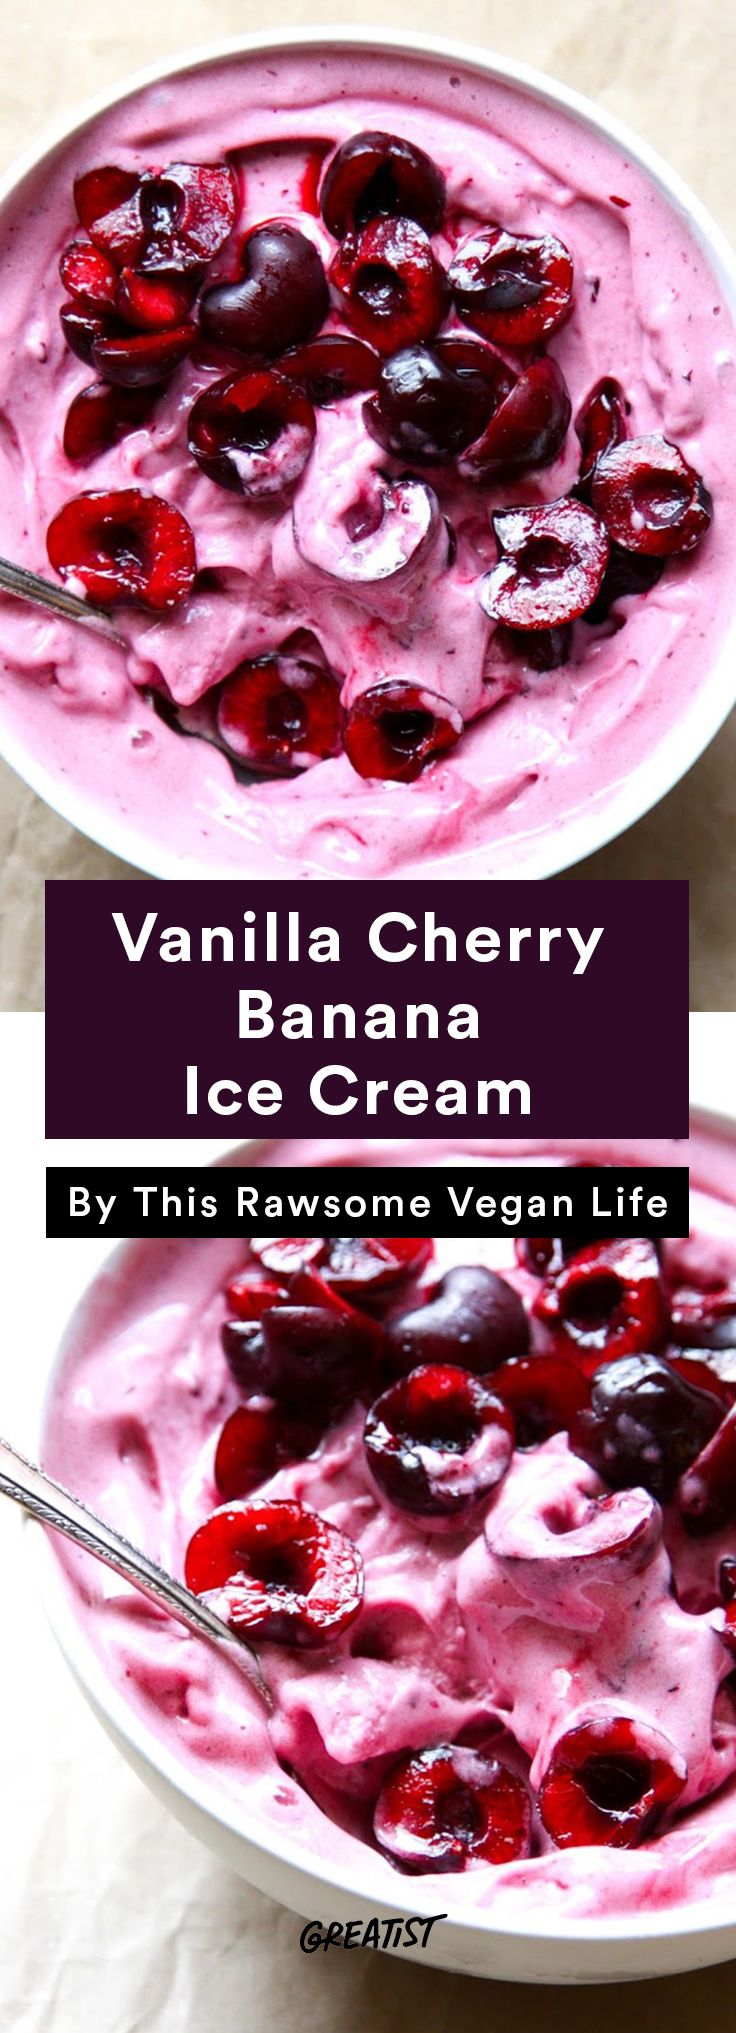 1. Vanilla Cherry Banana Ice Cream #icecream #recipes http://greatist.com/eat/ice-cream-recipes-that-dont-require-fancy-equipment